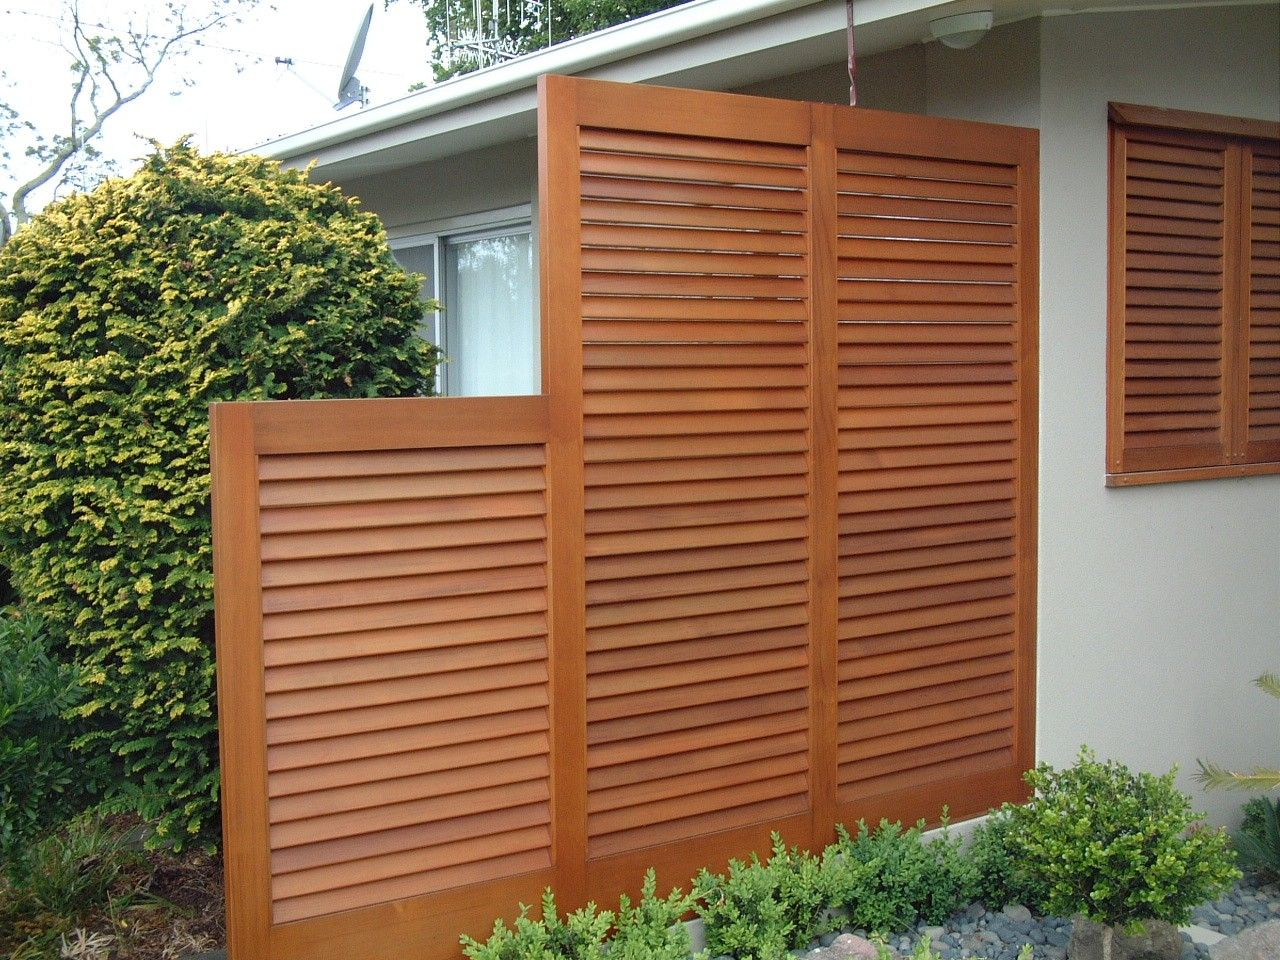 Beautiful exterior outdoor privacy screens shop at for Small patio privacy screens